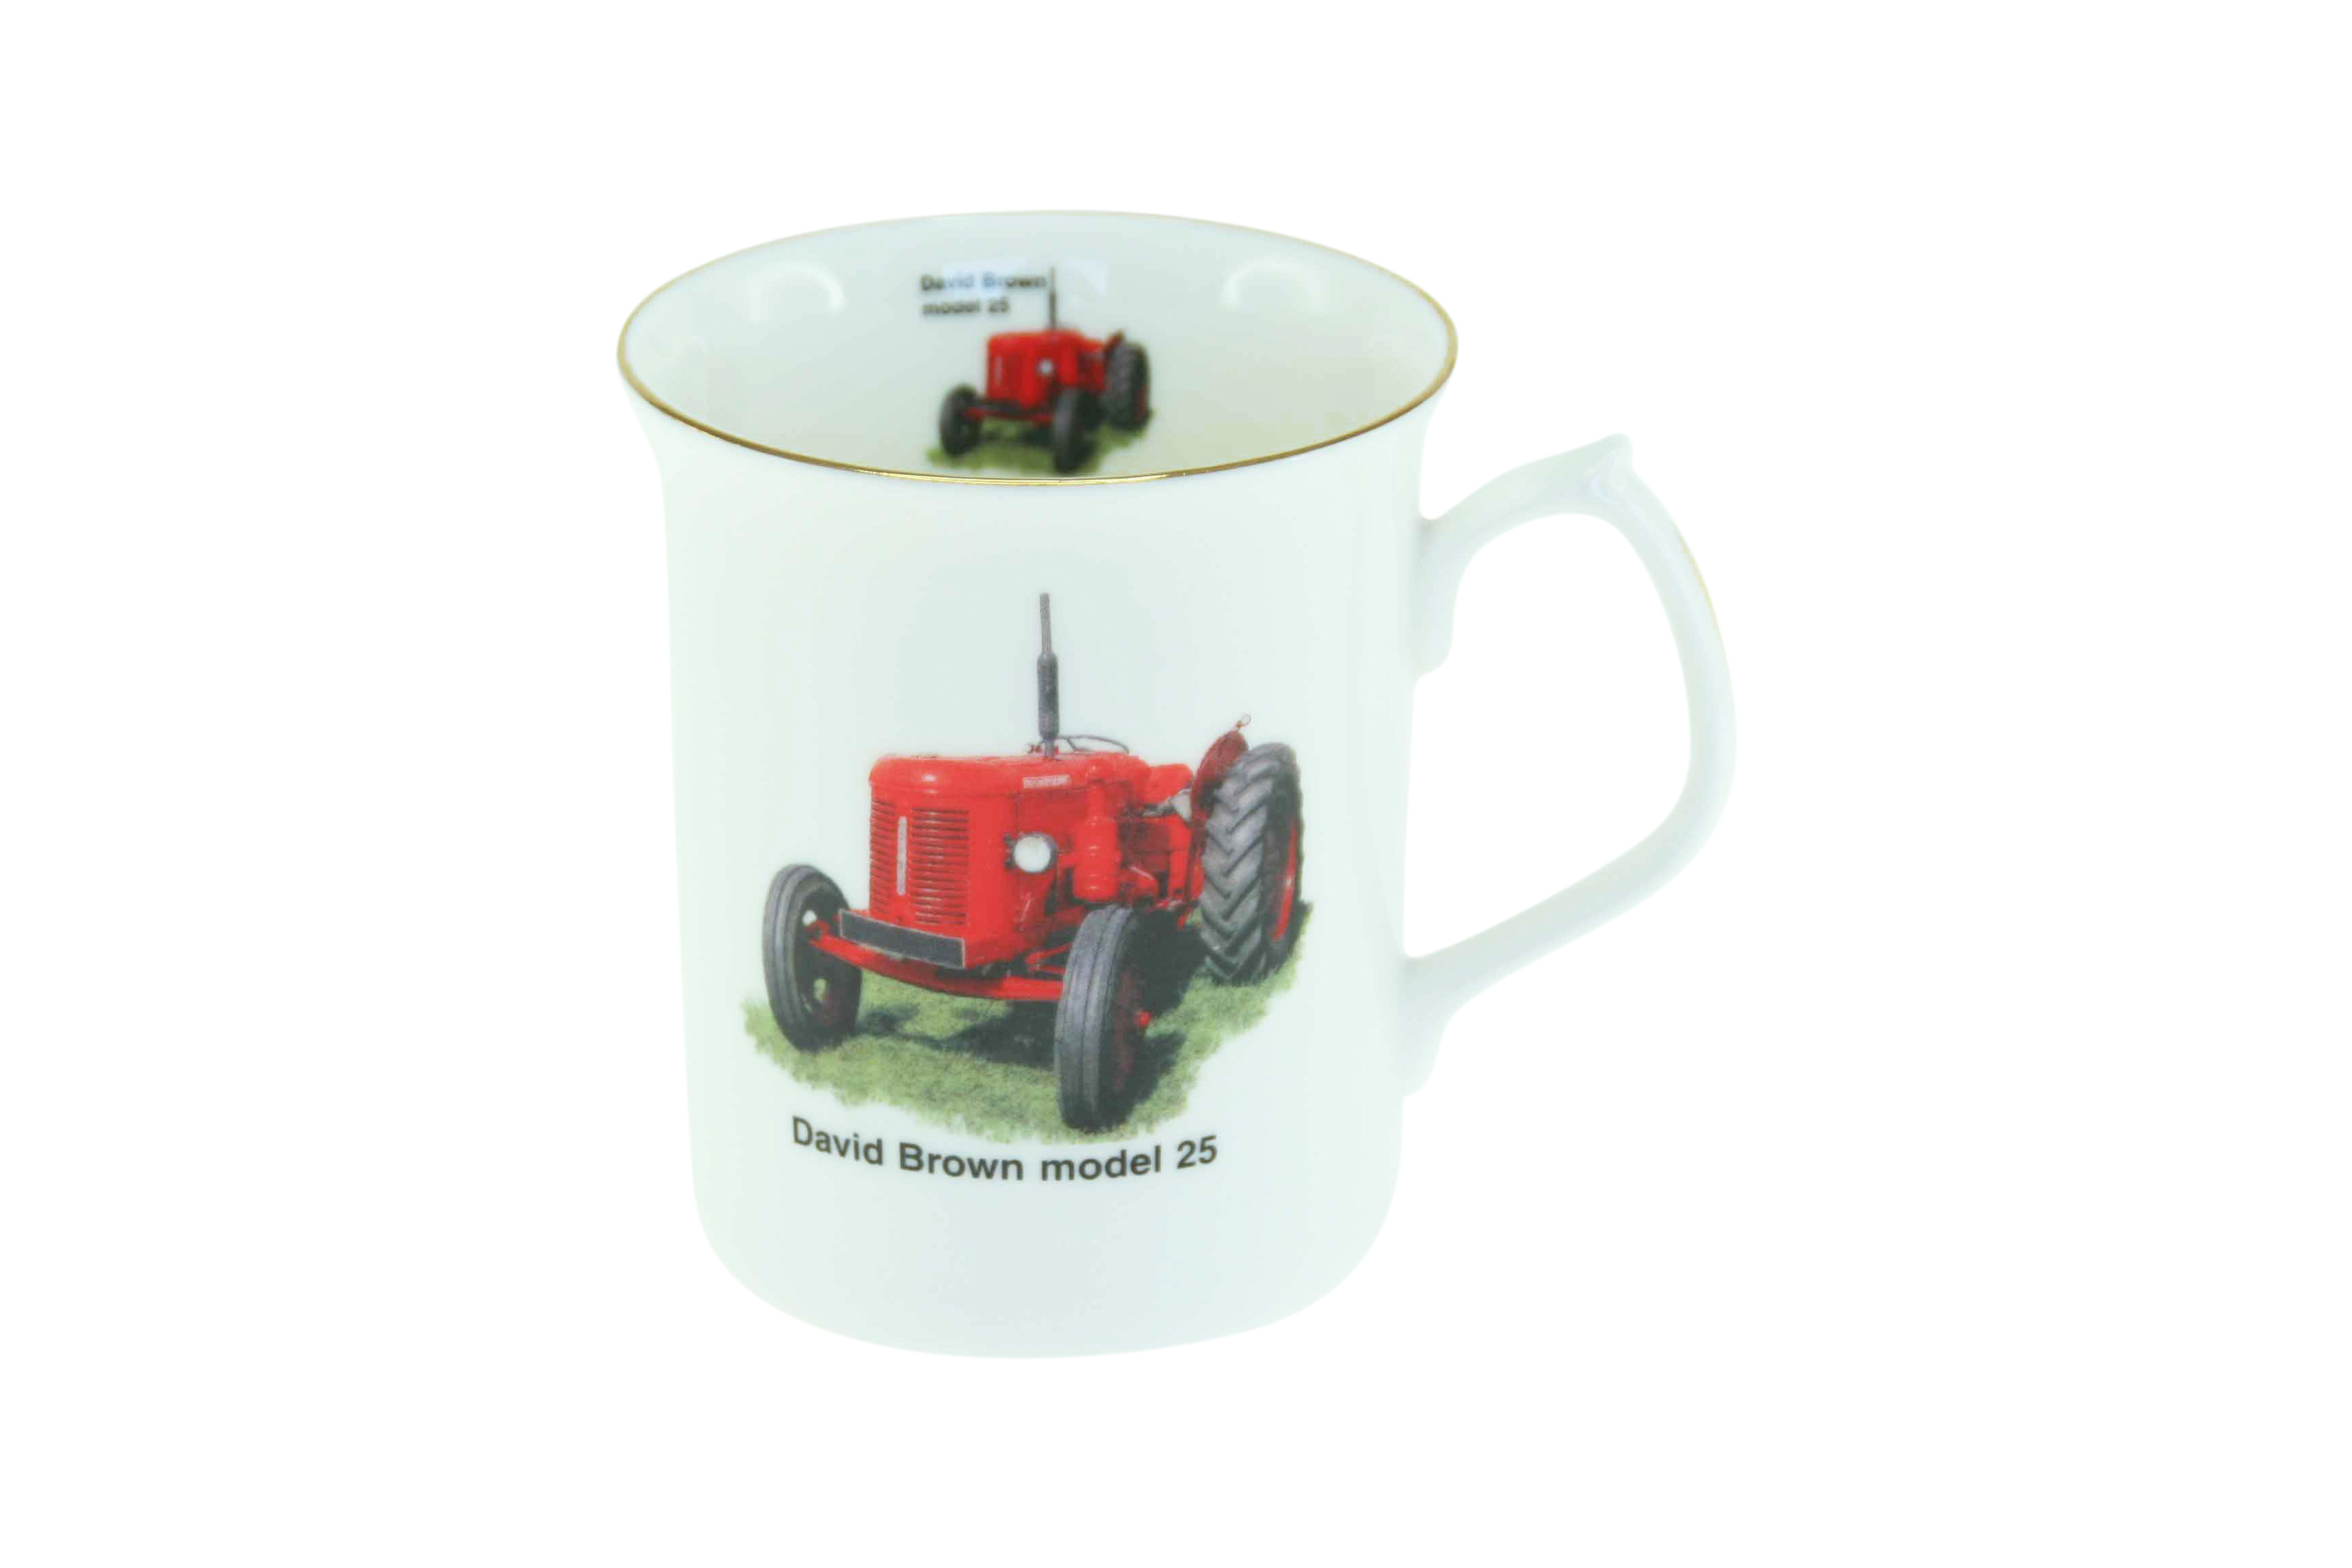 Tractor Tankard 4 David Brown model 25